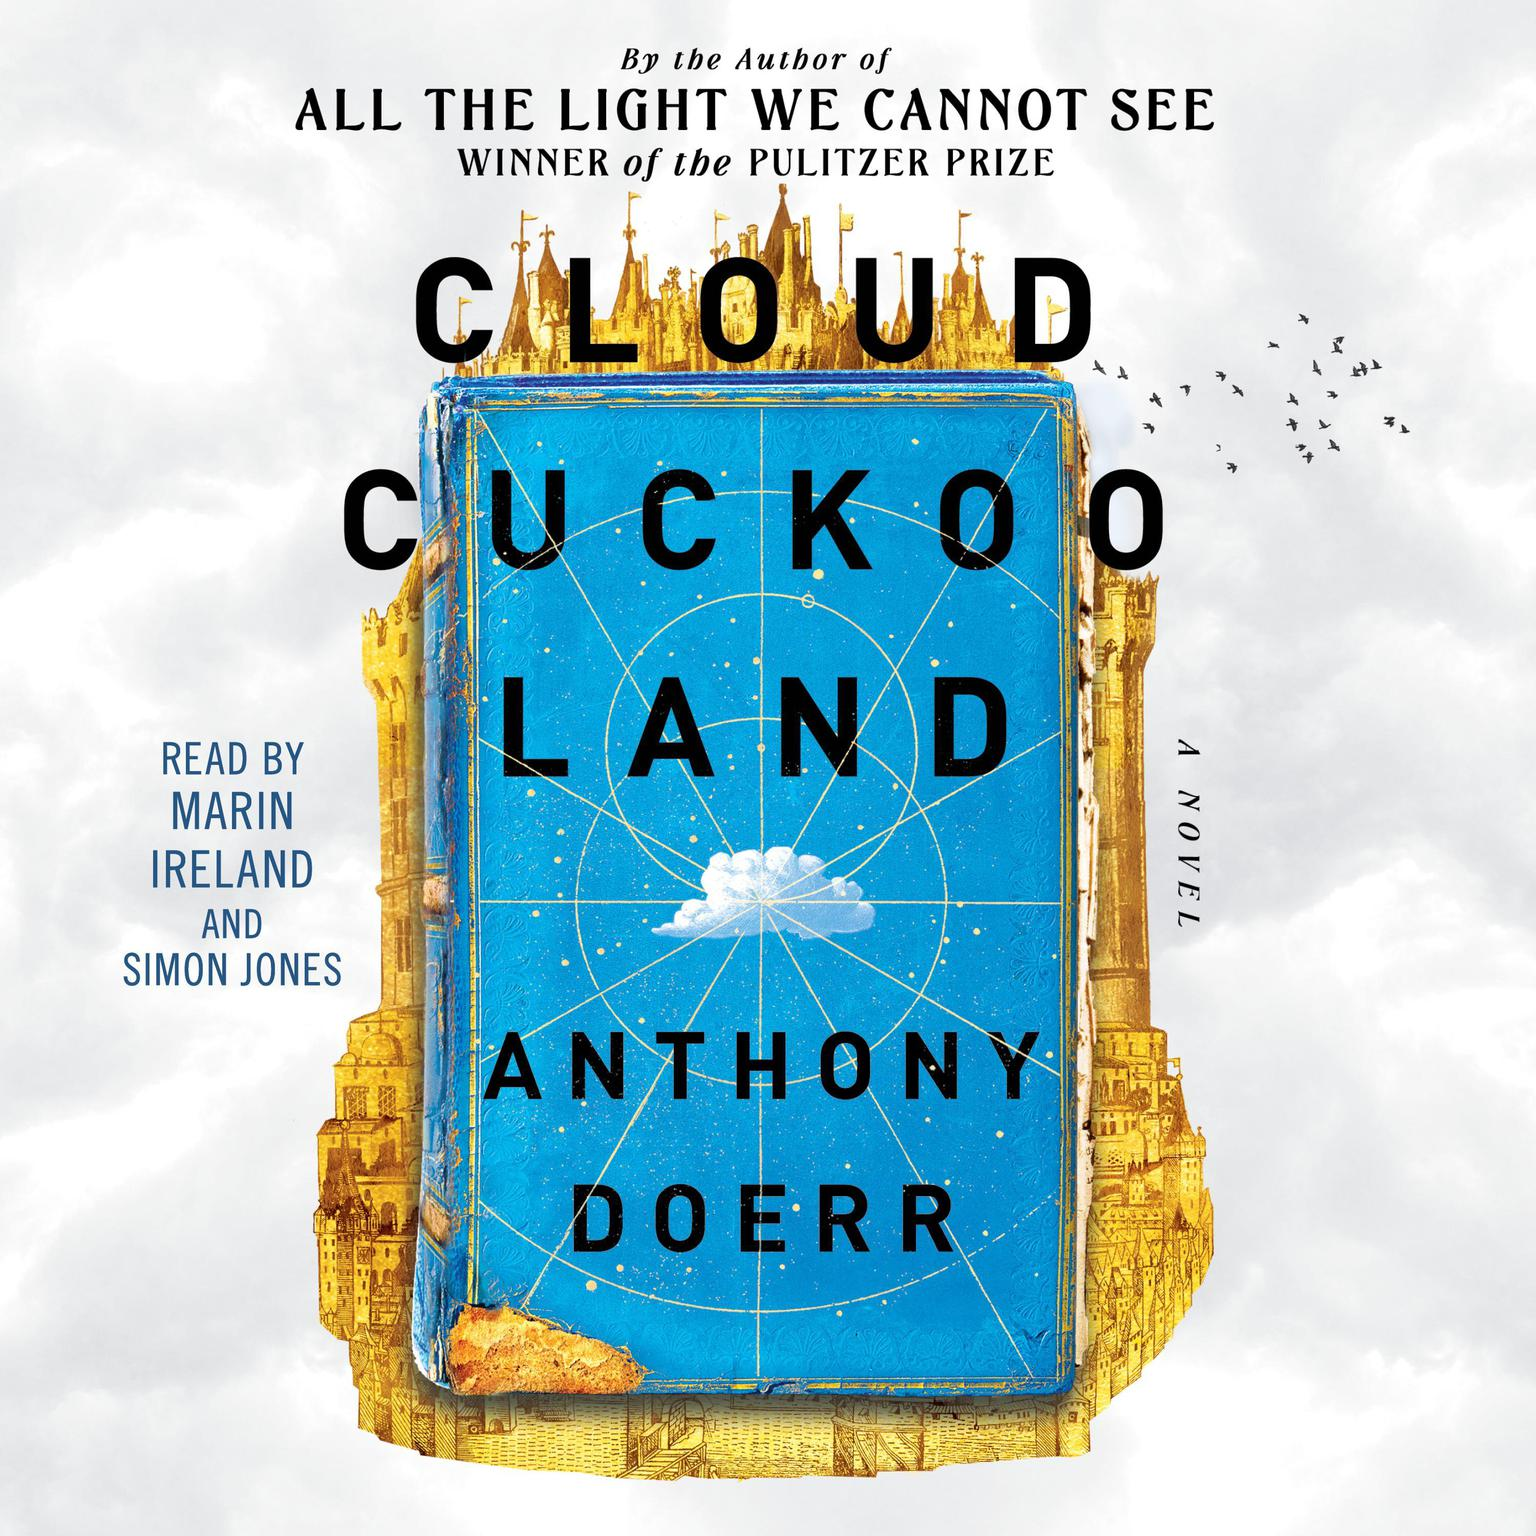 Cloud Cuckoo Land: A Novel Audiobook, by Anthony Doerr